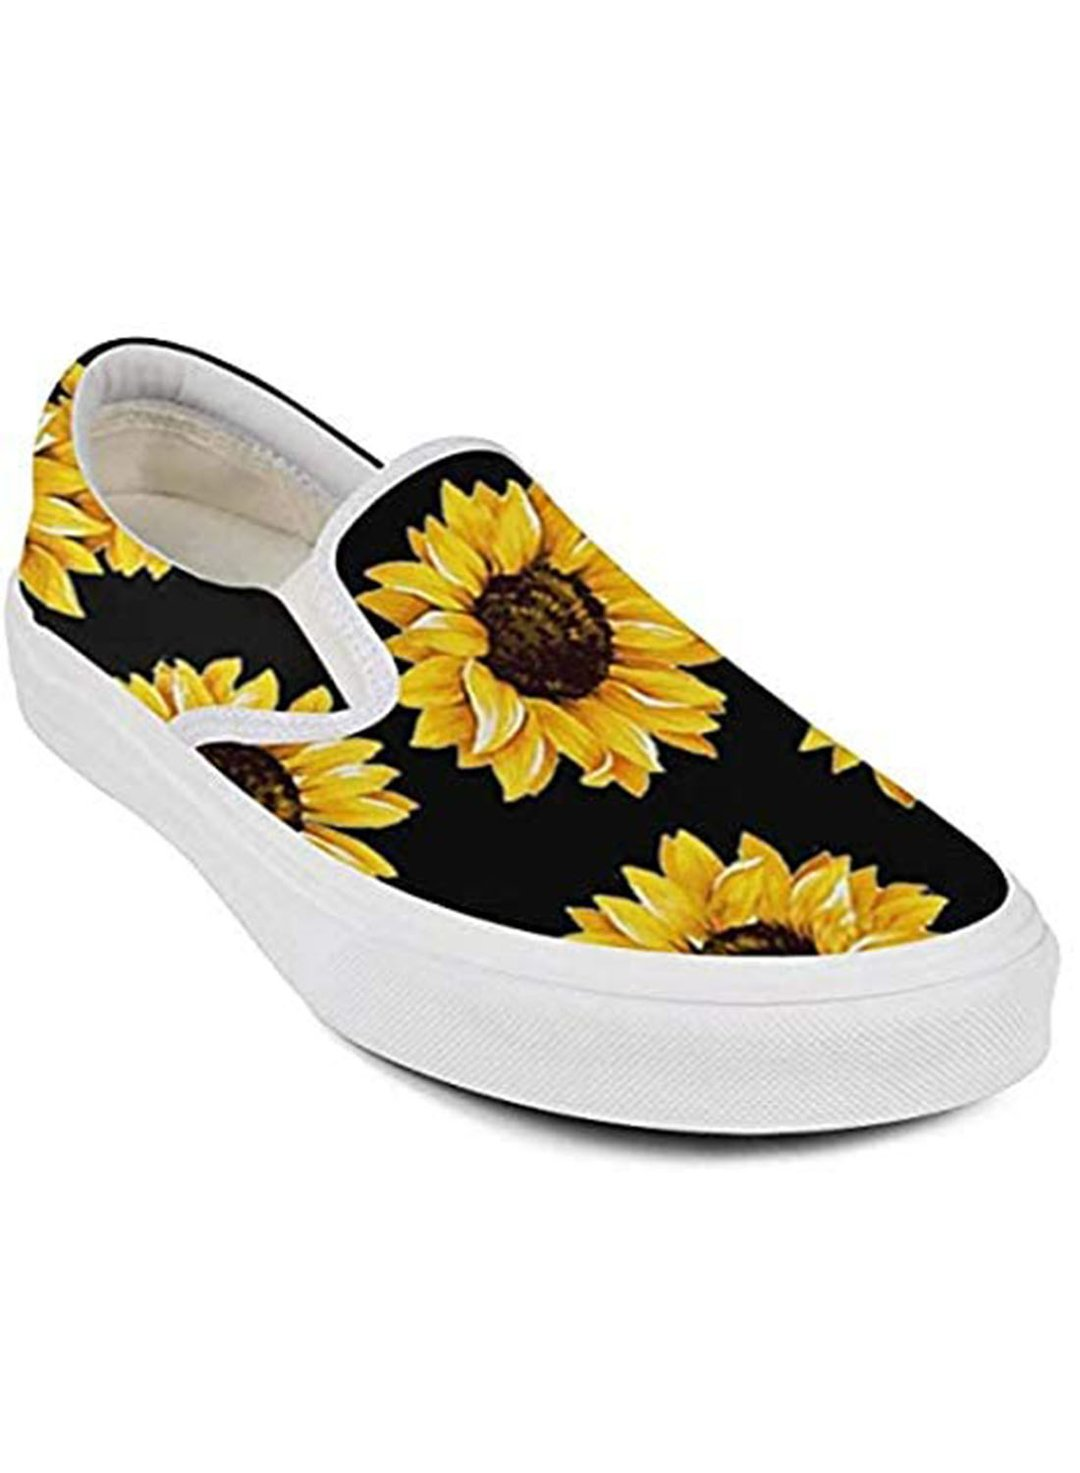 Black Women's Shoes Canvas Sunflower Print Pedal Shoes LC121161-2